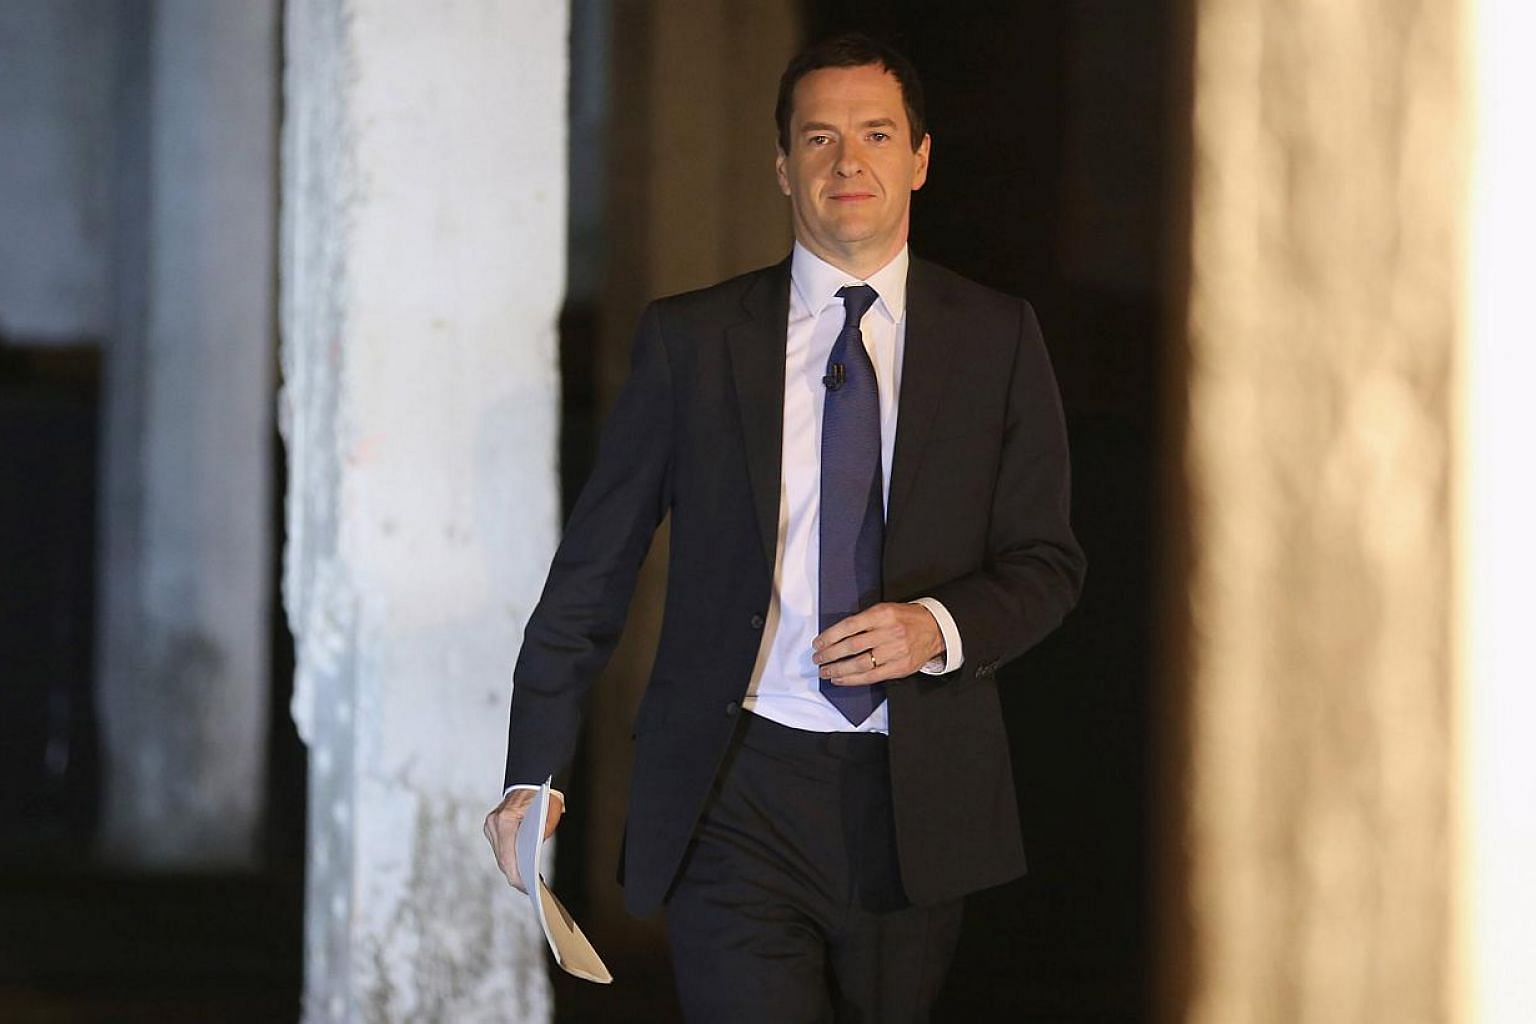 Britain's finance minister George Osborne announced plans for a second 2015 government budget on Saturday to quickly implement his Conservative Party's campaign promises of spending cuts and savings following a surprise election win. -- PHOTO: REUTER